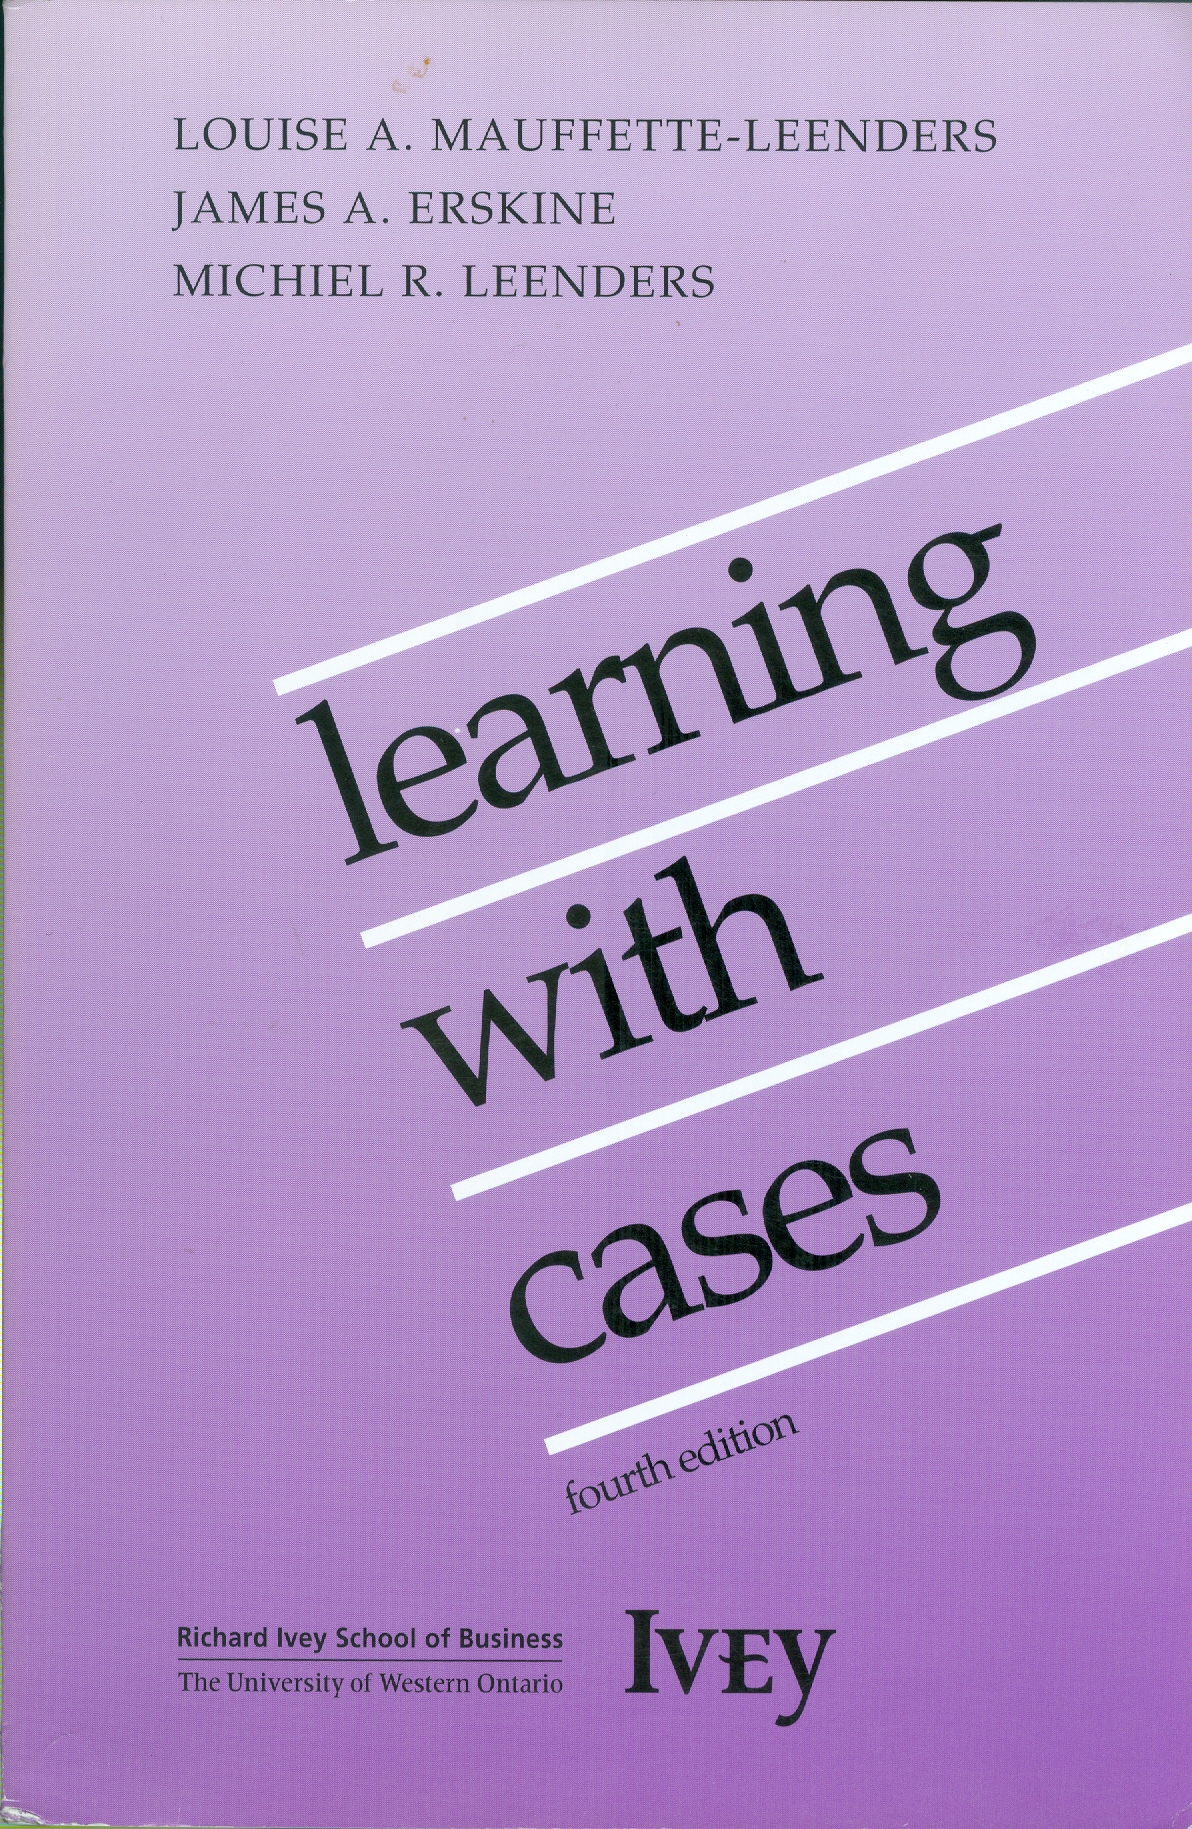 learning with cases0001.jpg